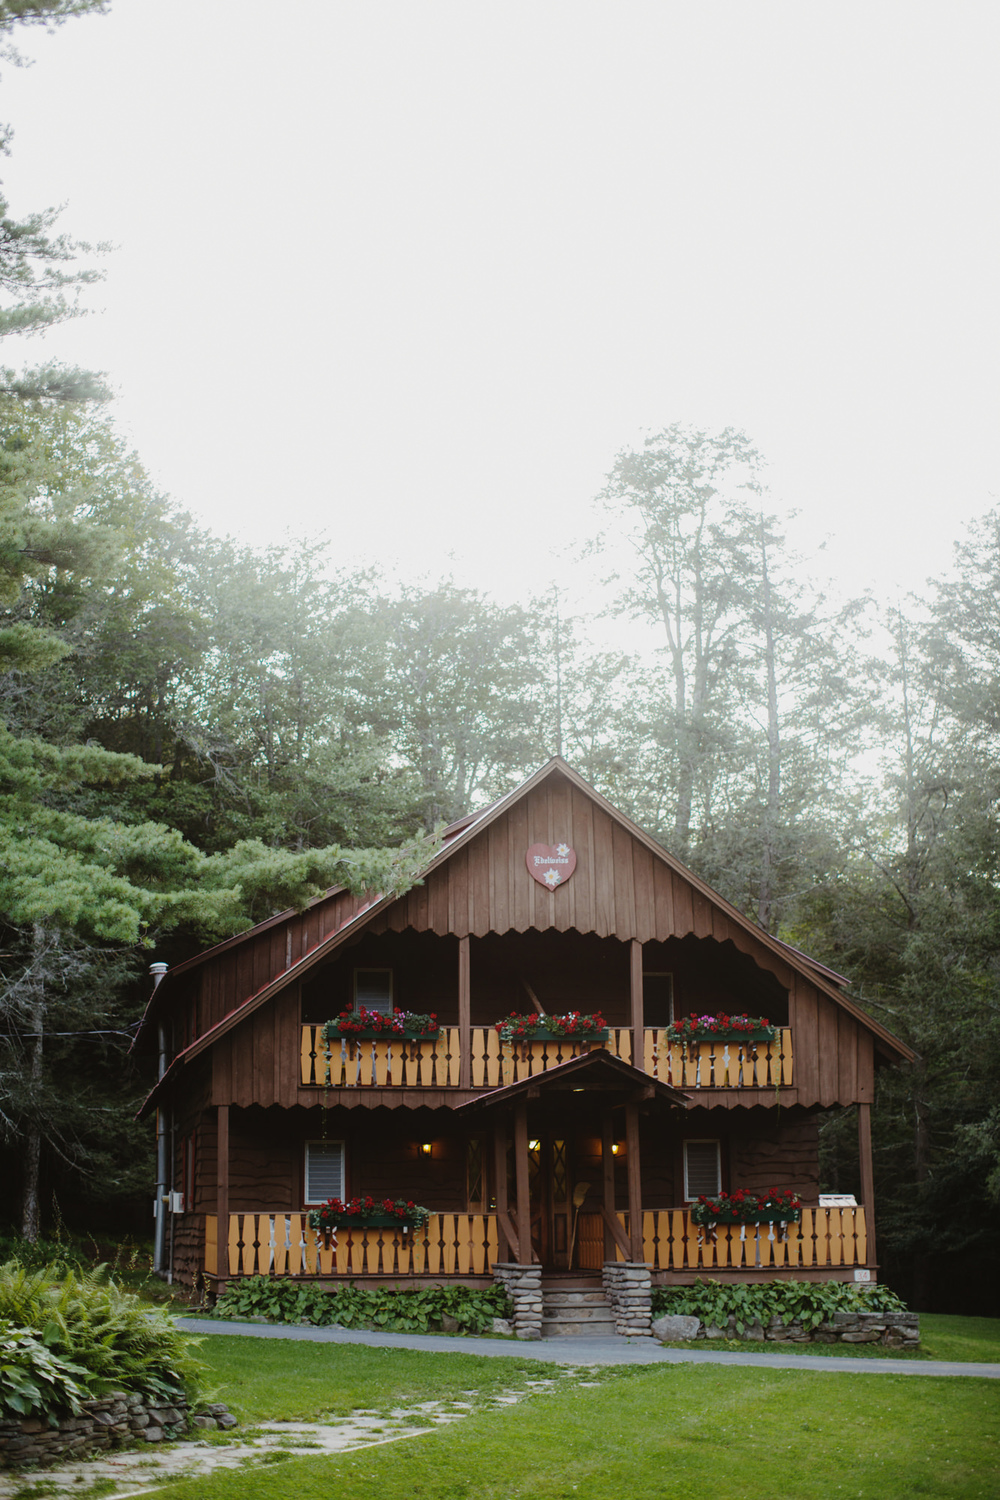 catskills_big_indian_springs_upstate_NY_wedding_sammblake001.jpg